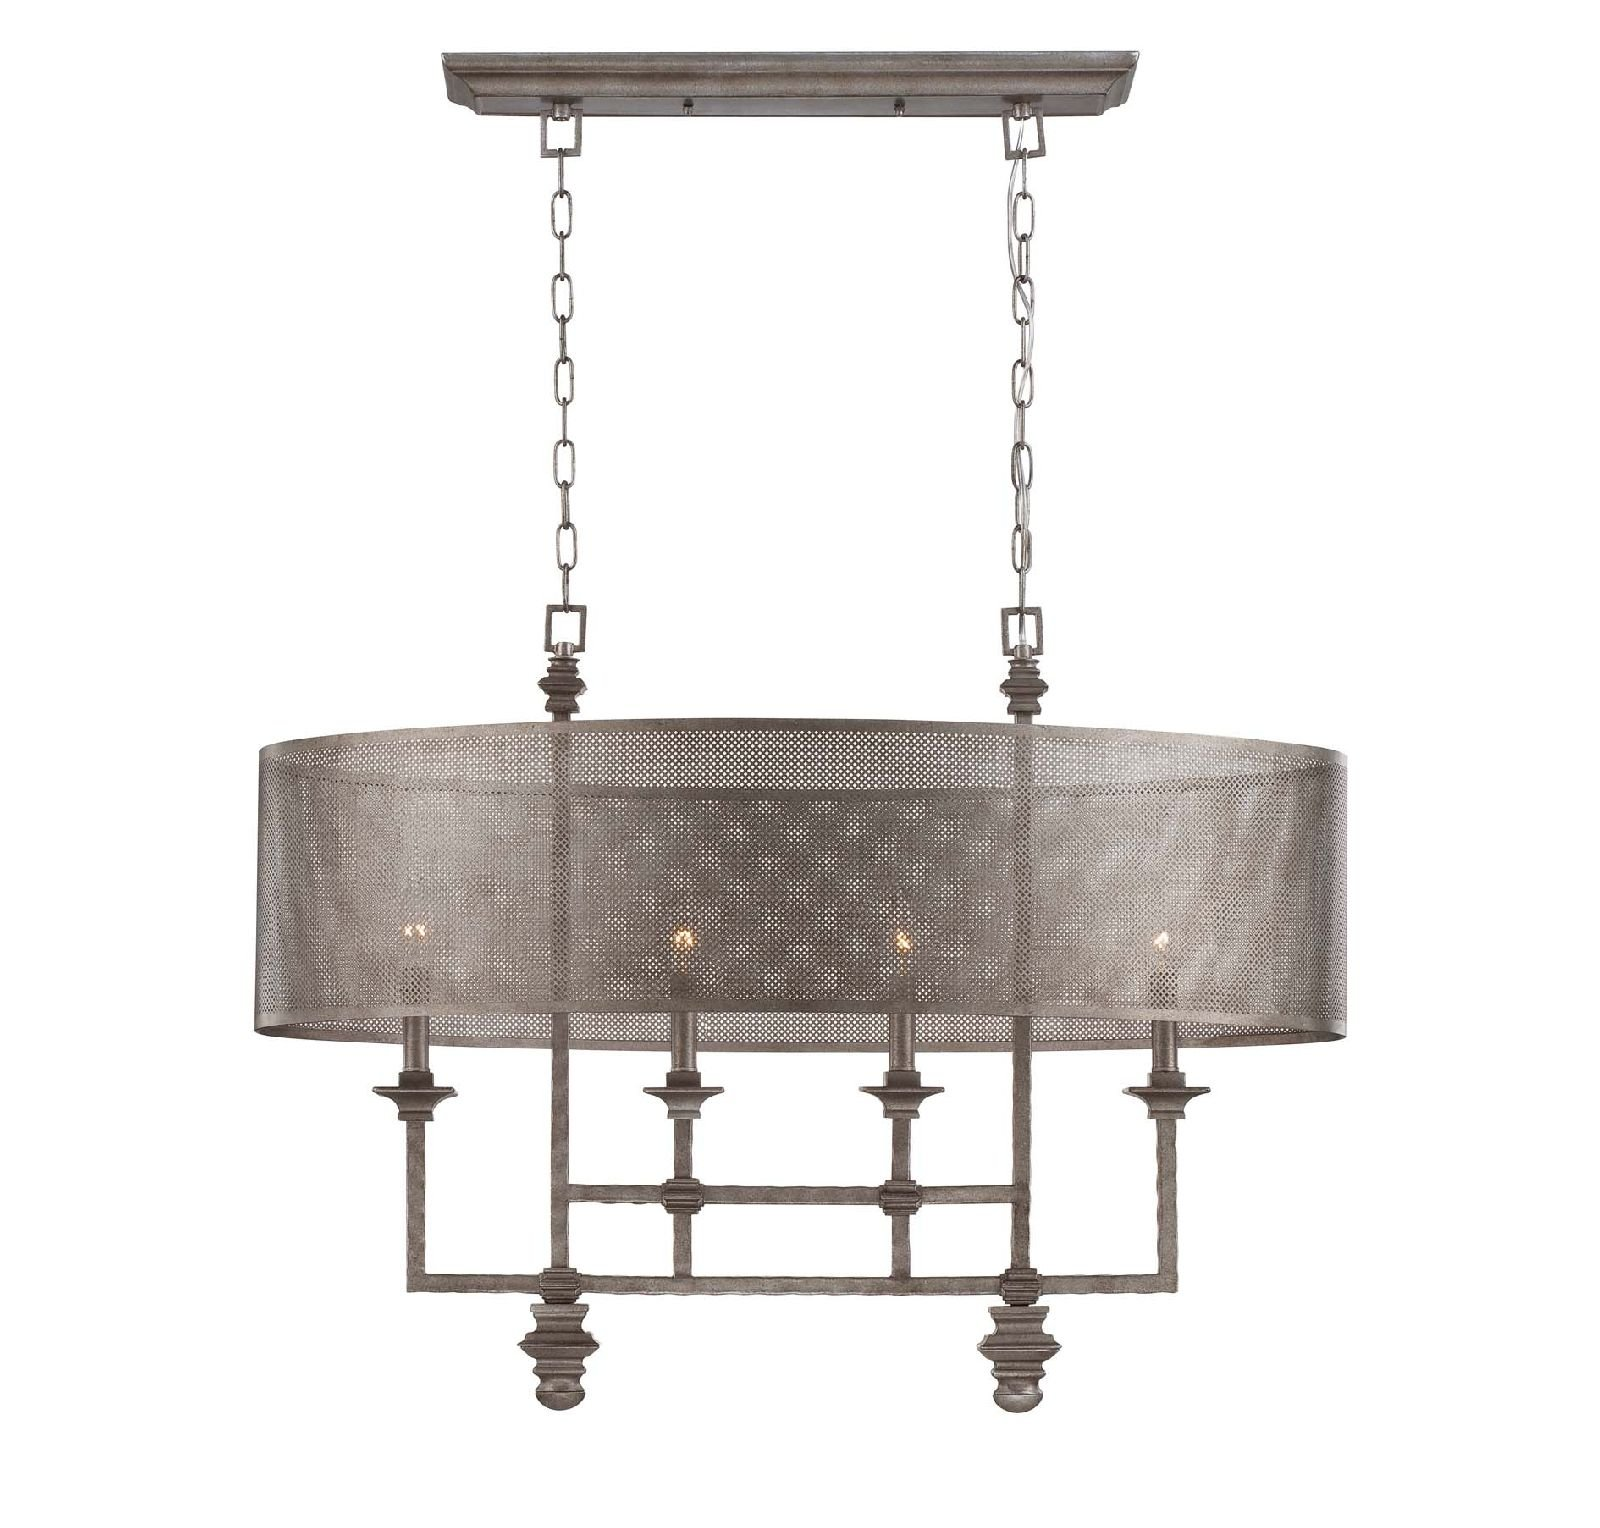 in bourges chandelier cfm finish inch glass item forged house wide shown lighting light savoy image black magnifying